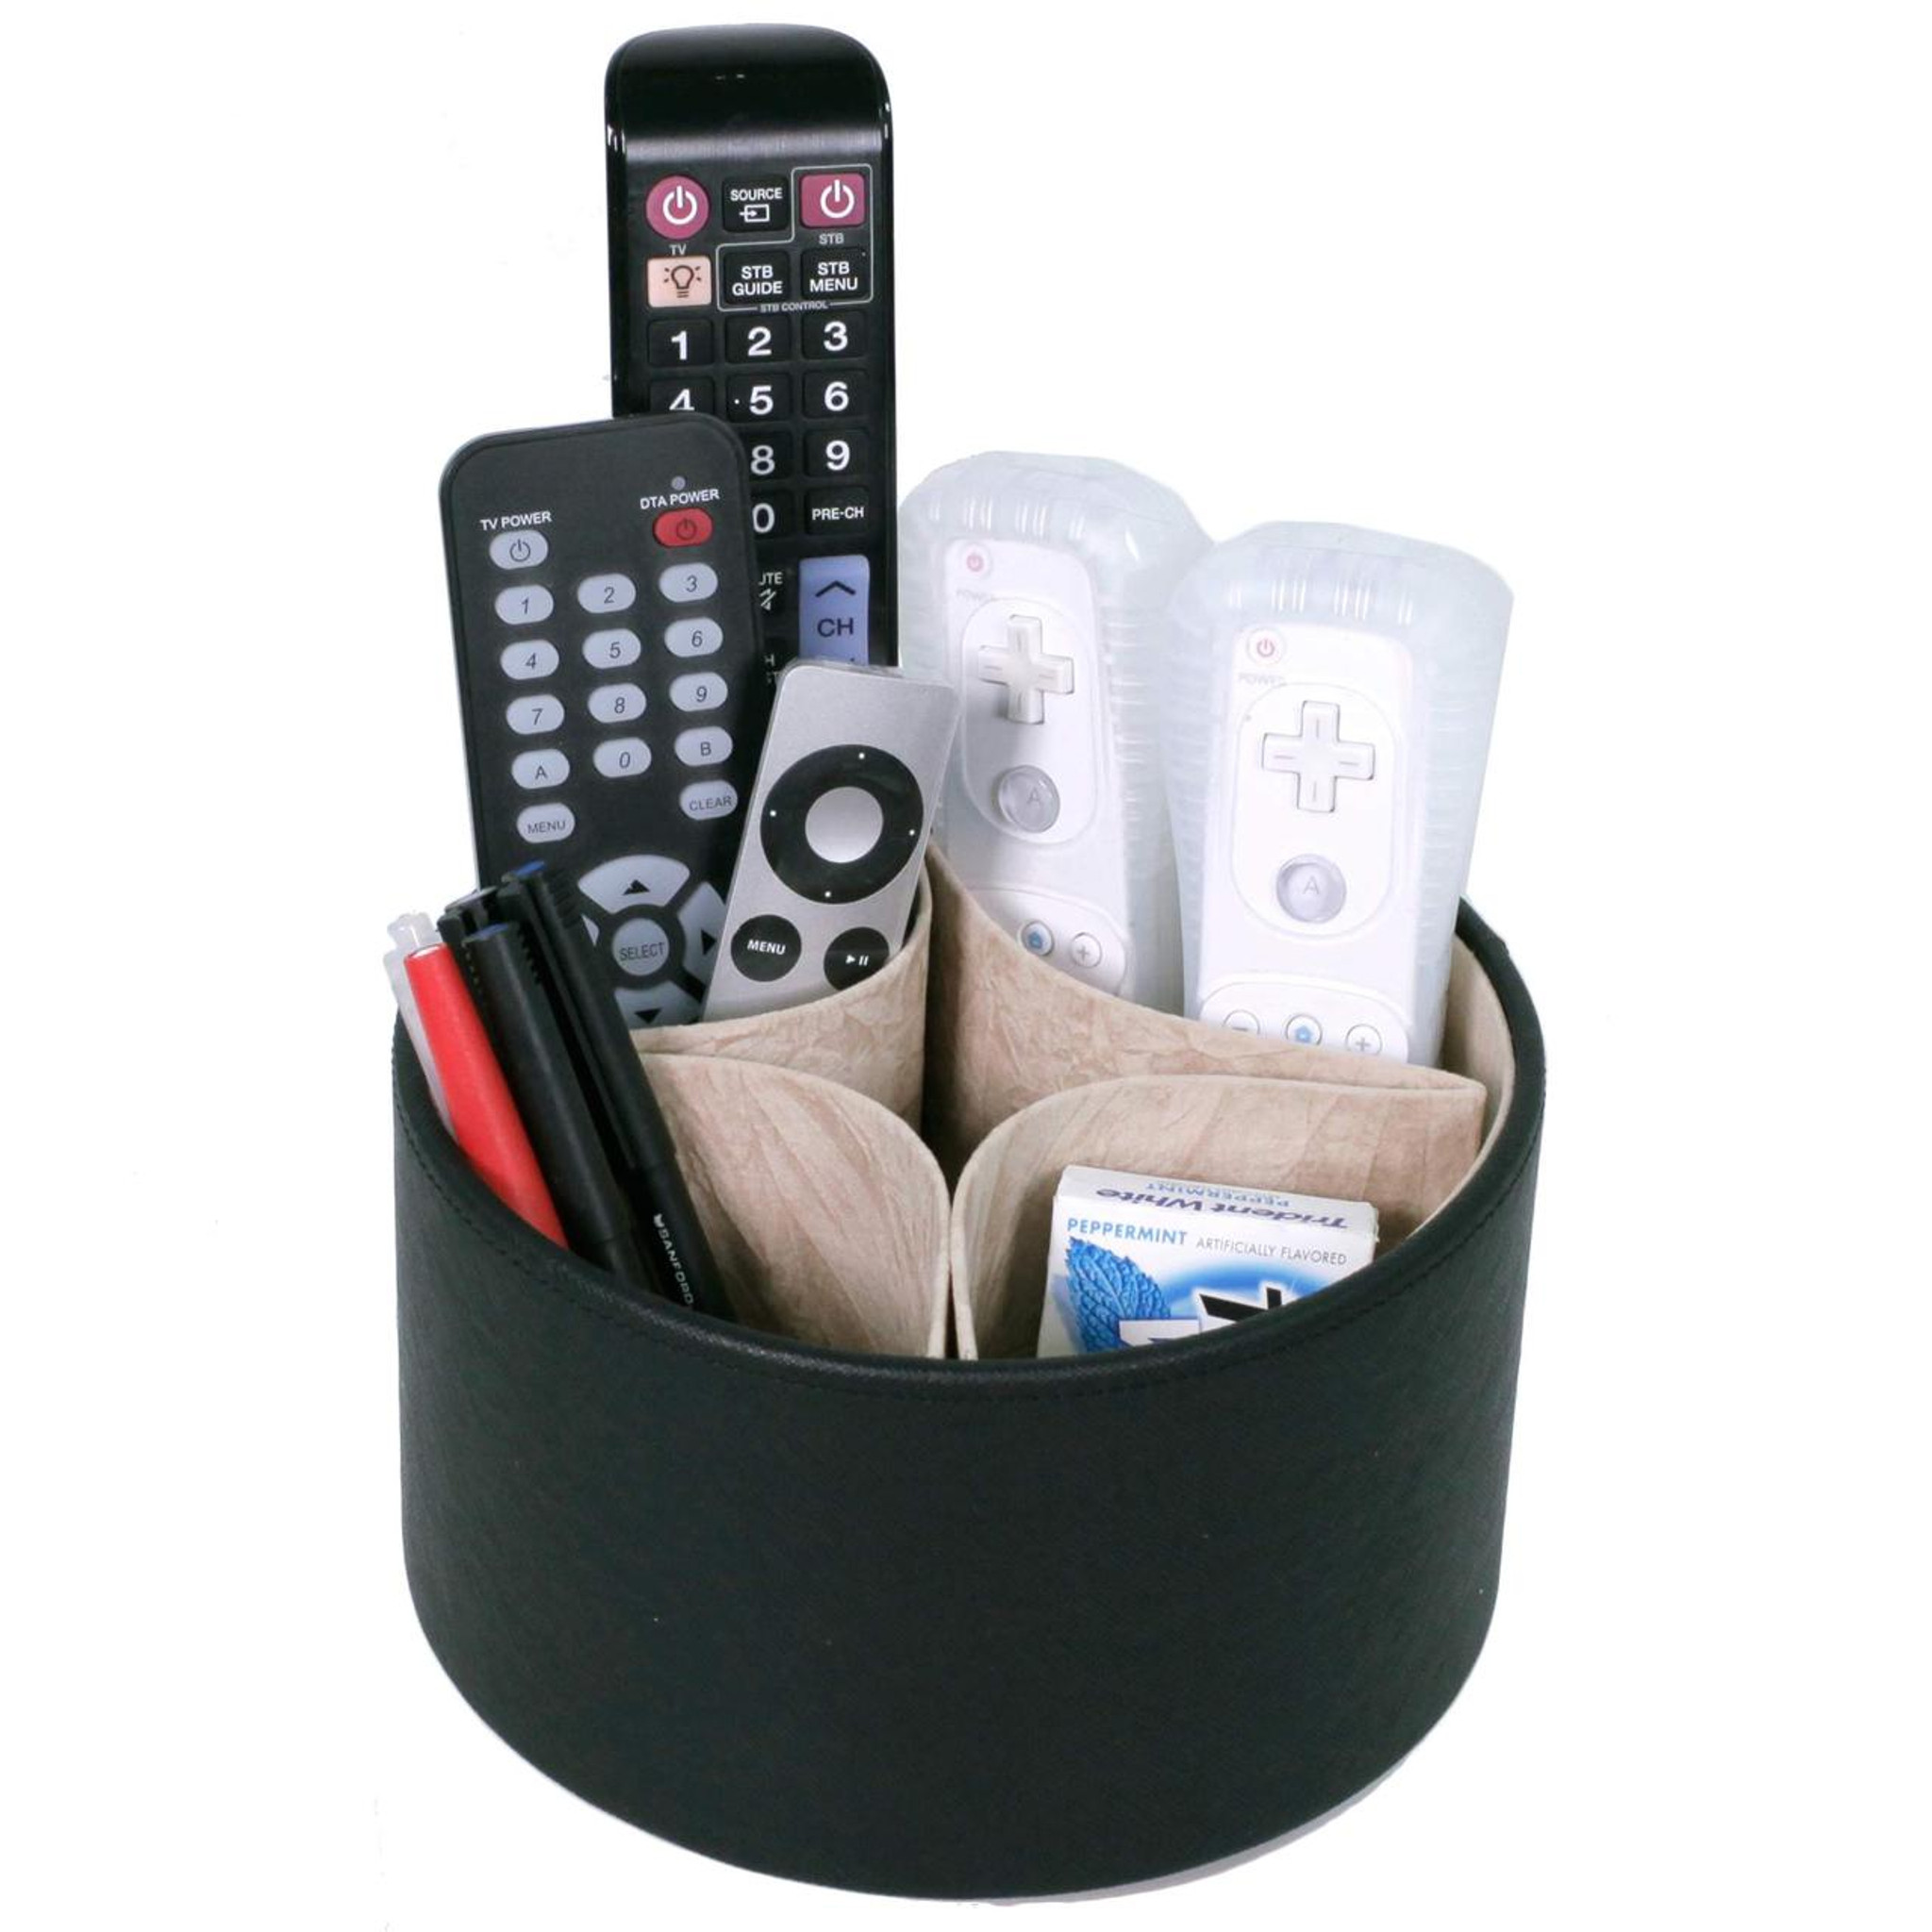 remote control organizer caddy coffee table tray techswiss home